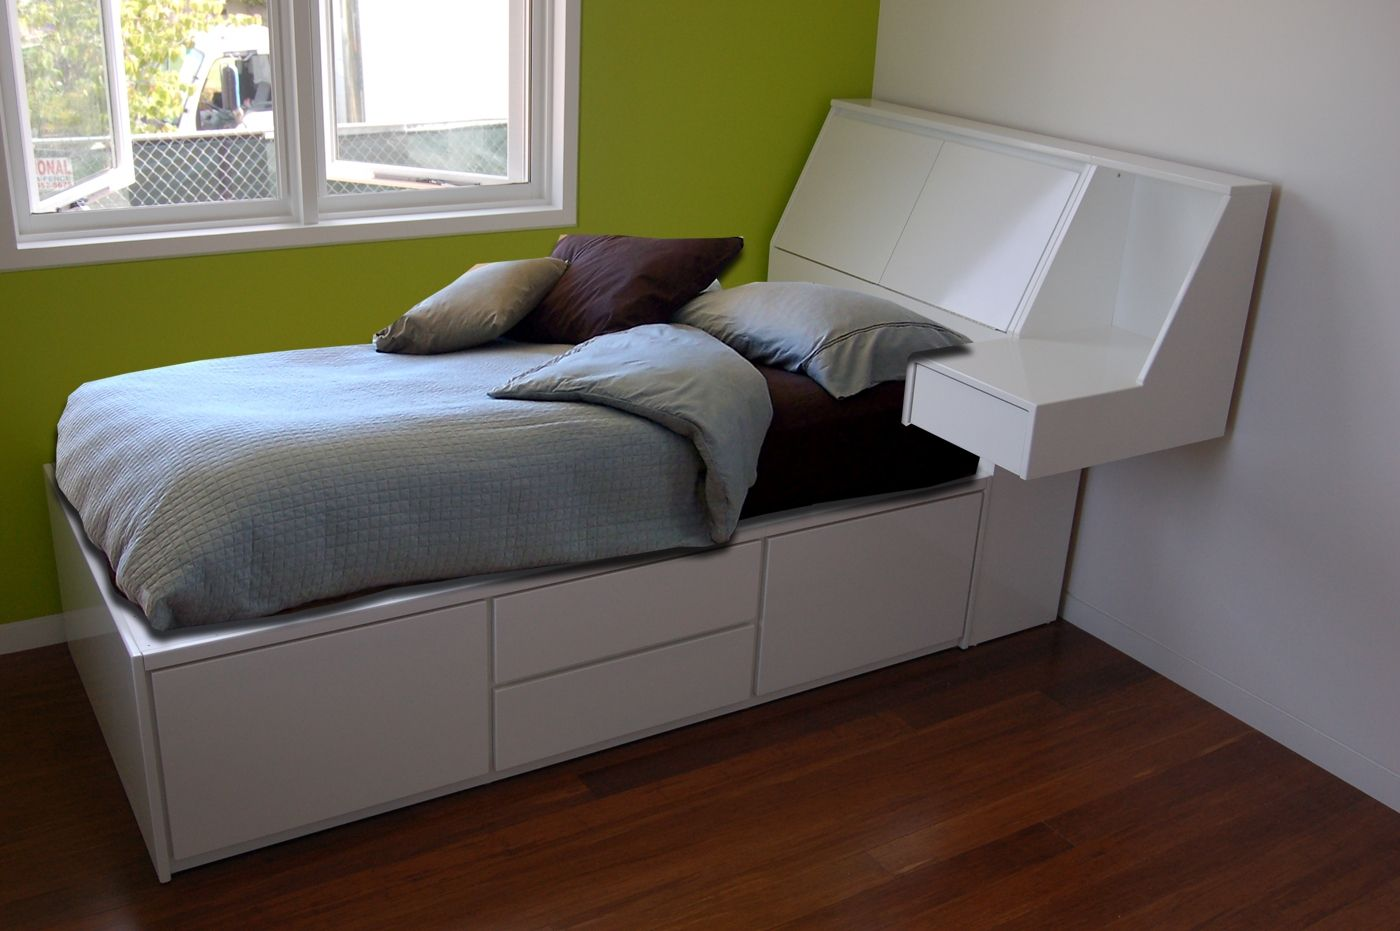 White Twin Platform Bed Frame And Headboard With Storage